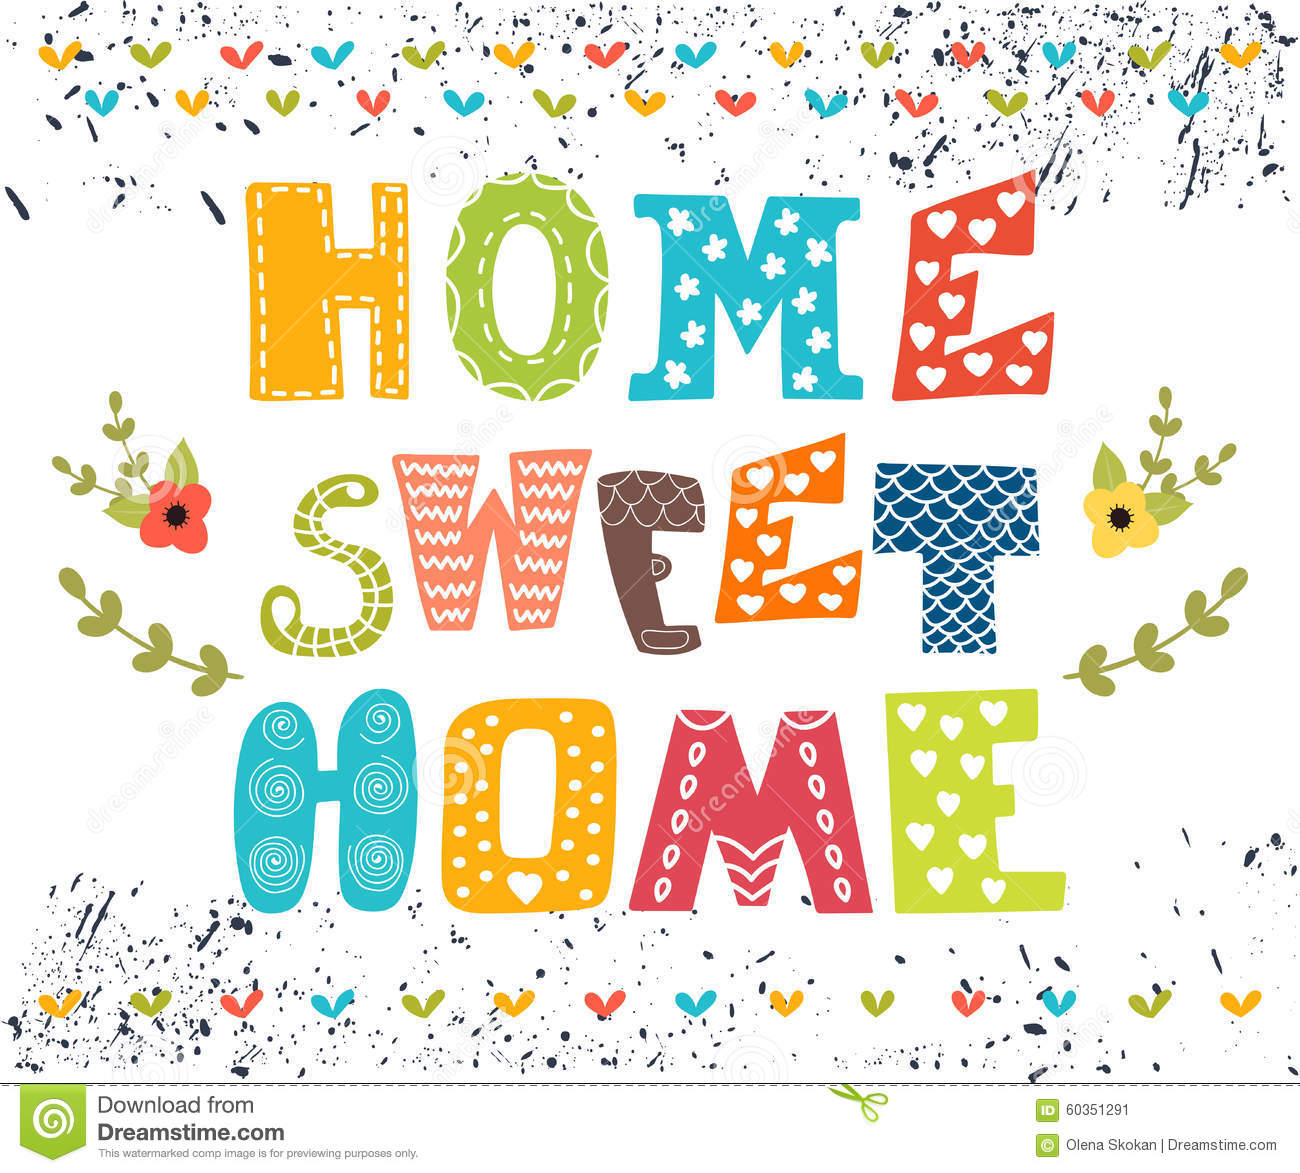 Home sweet home poster design with decorative text stock vector image 60351291 - Home sweet home designs ...